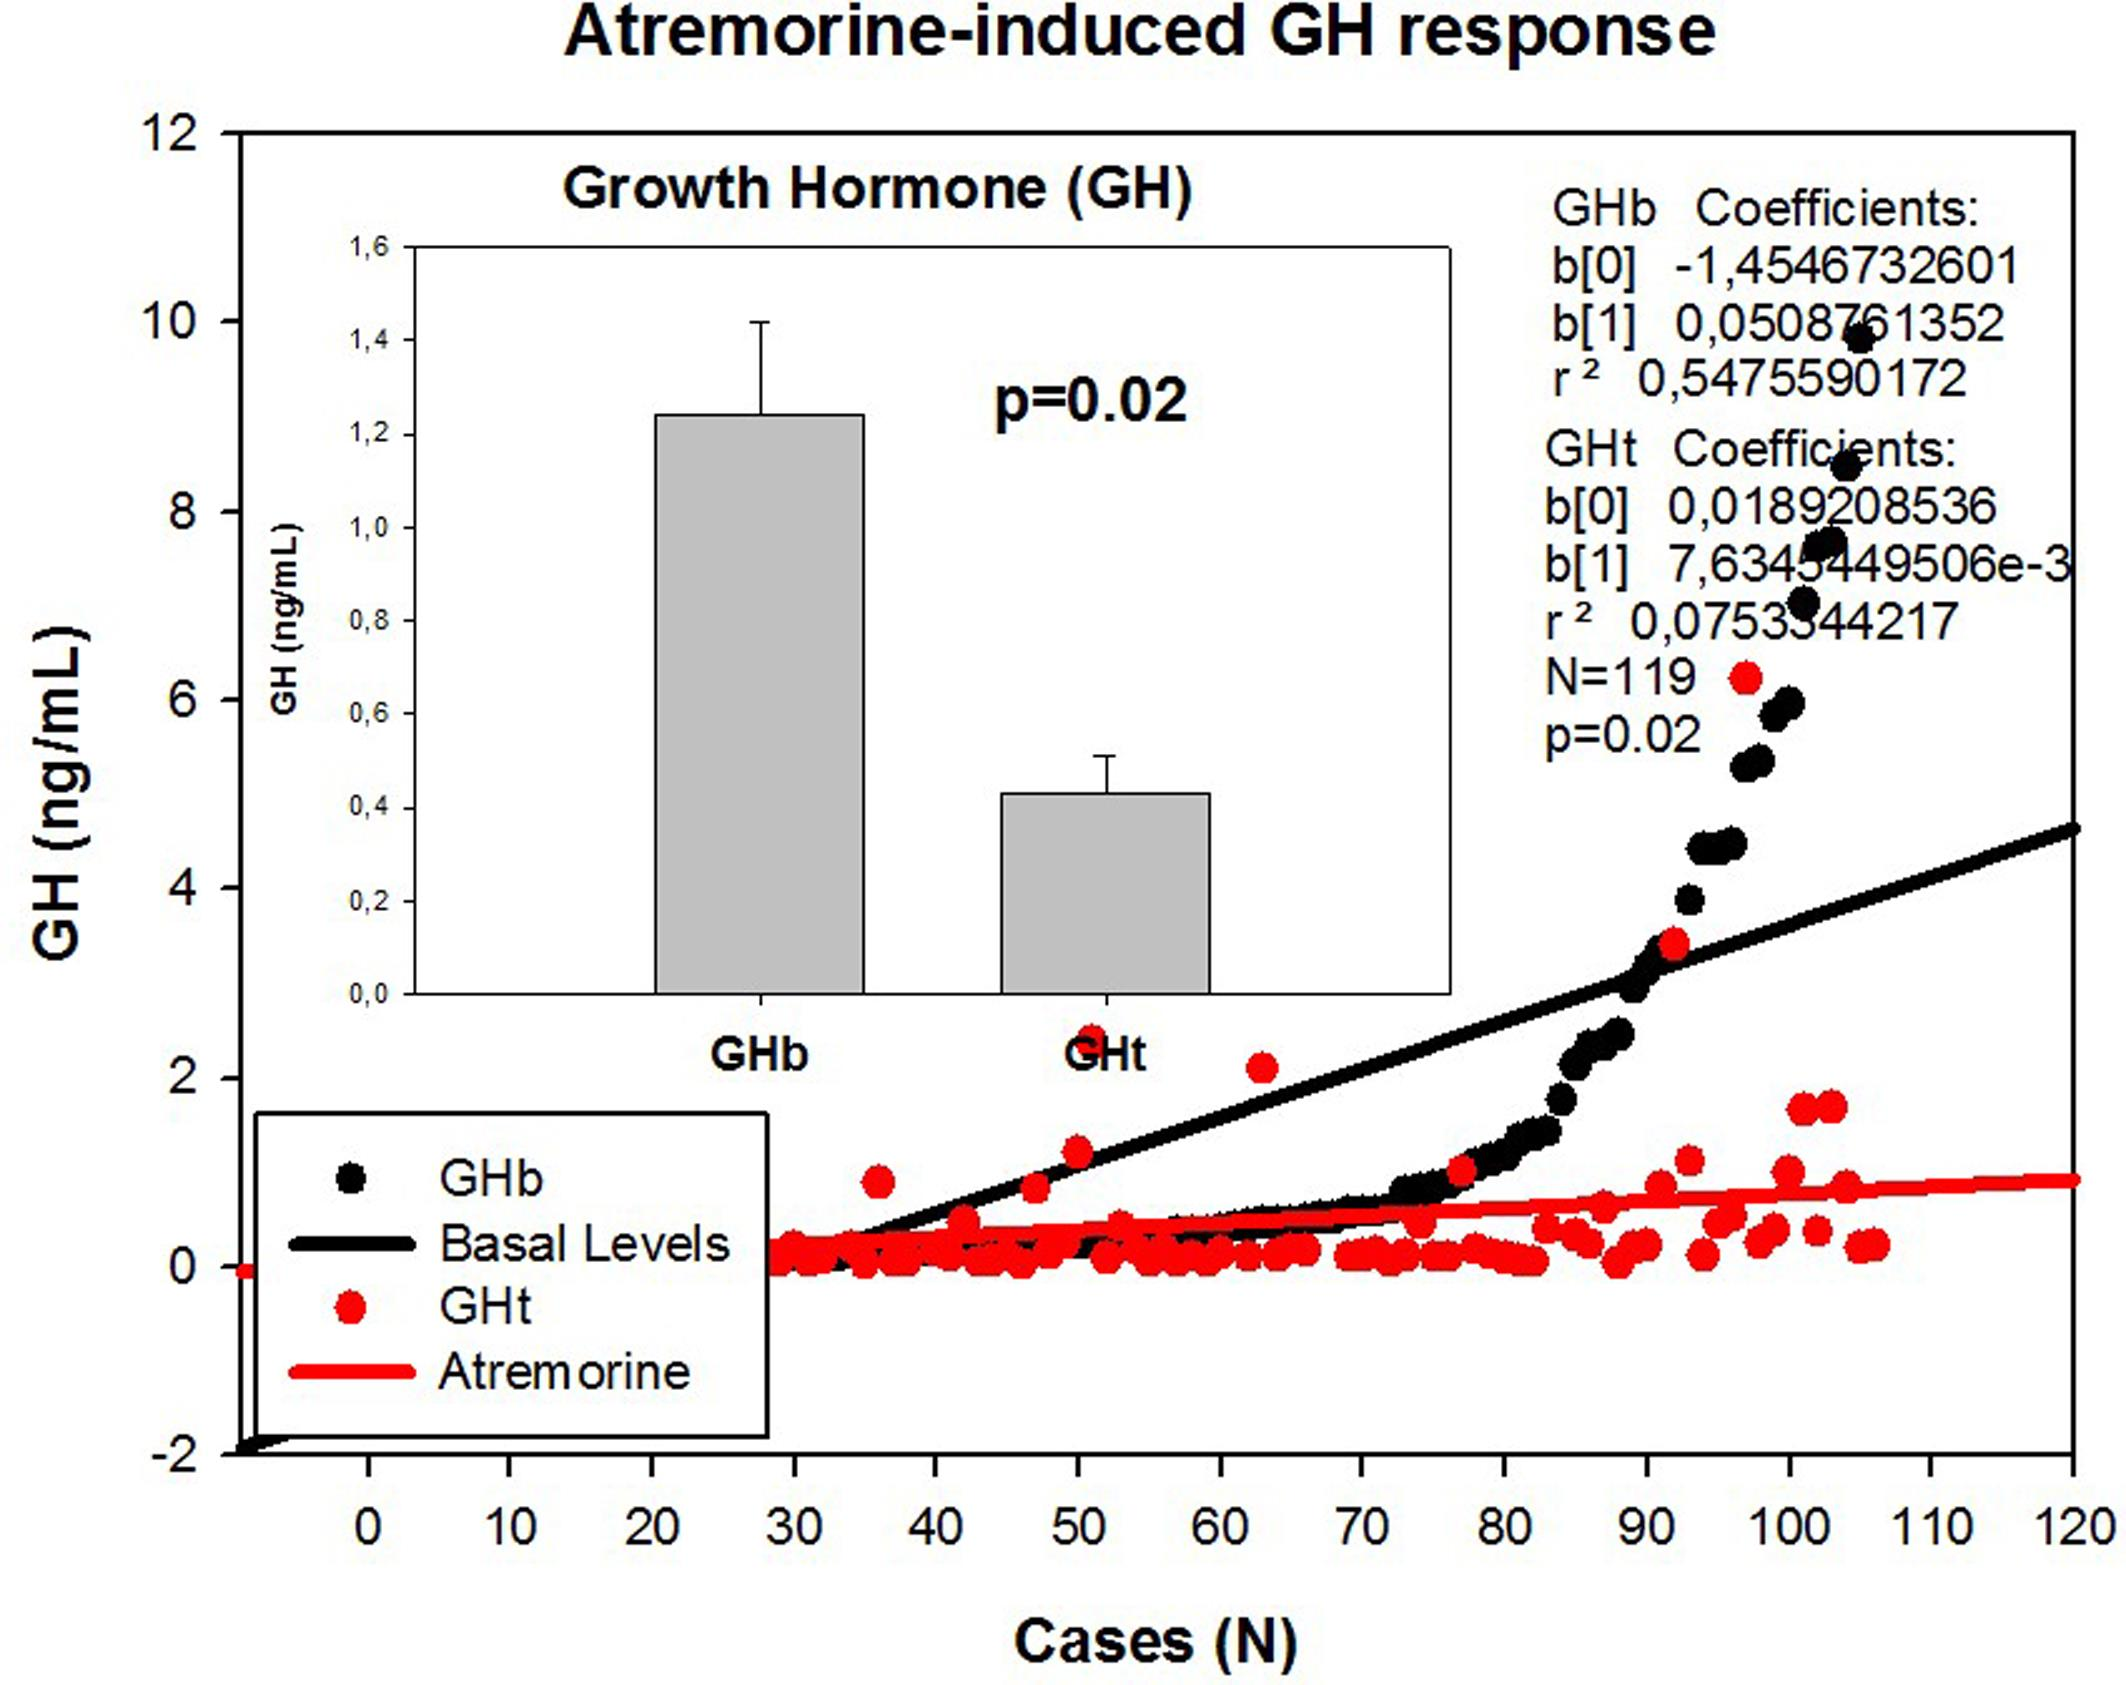 Atremorine-induced growth hormone (GH) response in patients with Parkinsonian disorders.